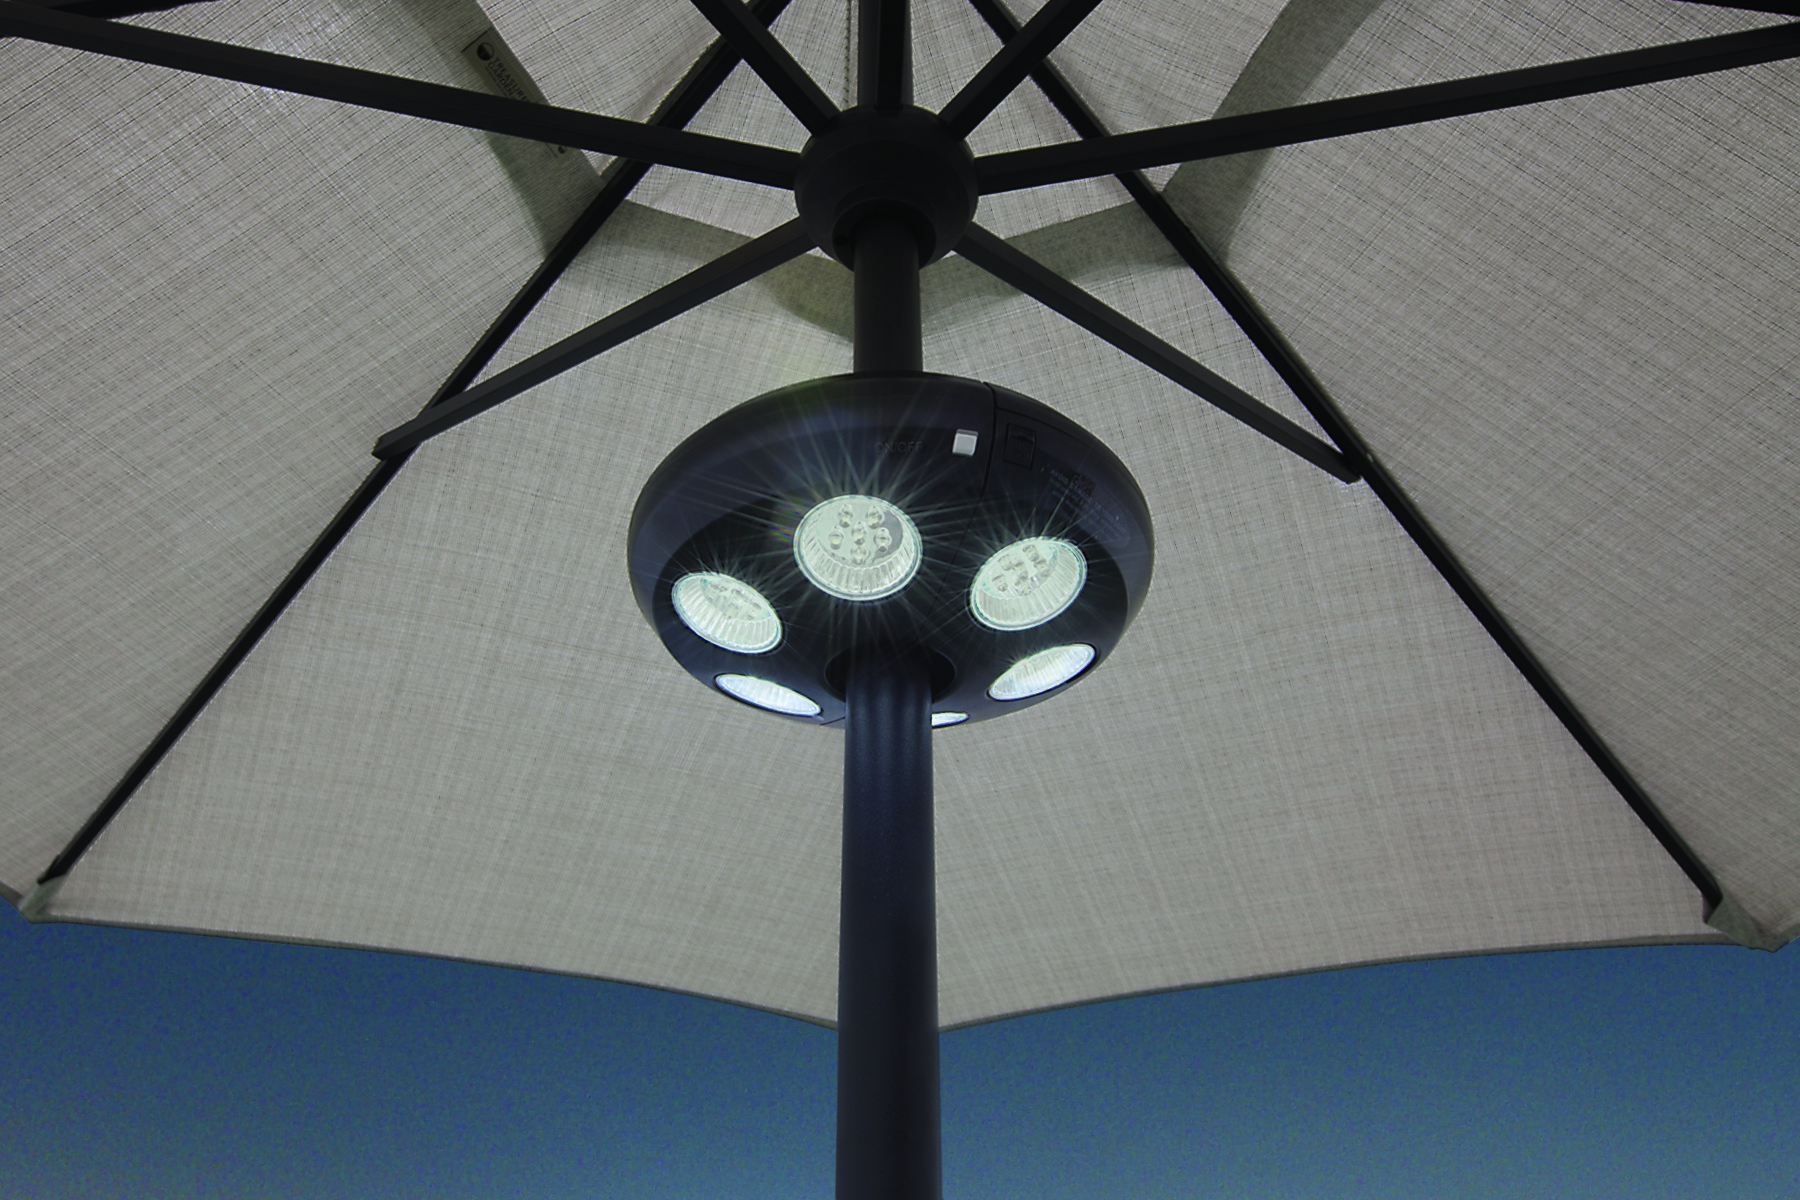 Large Vega Umbrella Light W 36 Led Lights Hauser S Patio